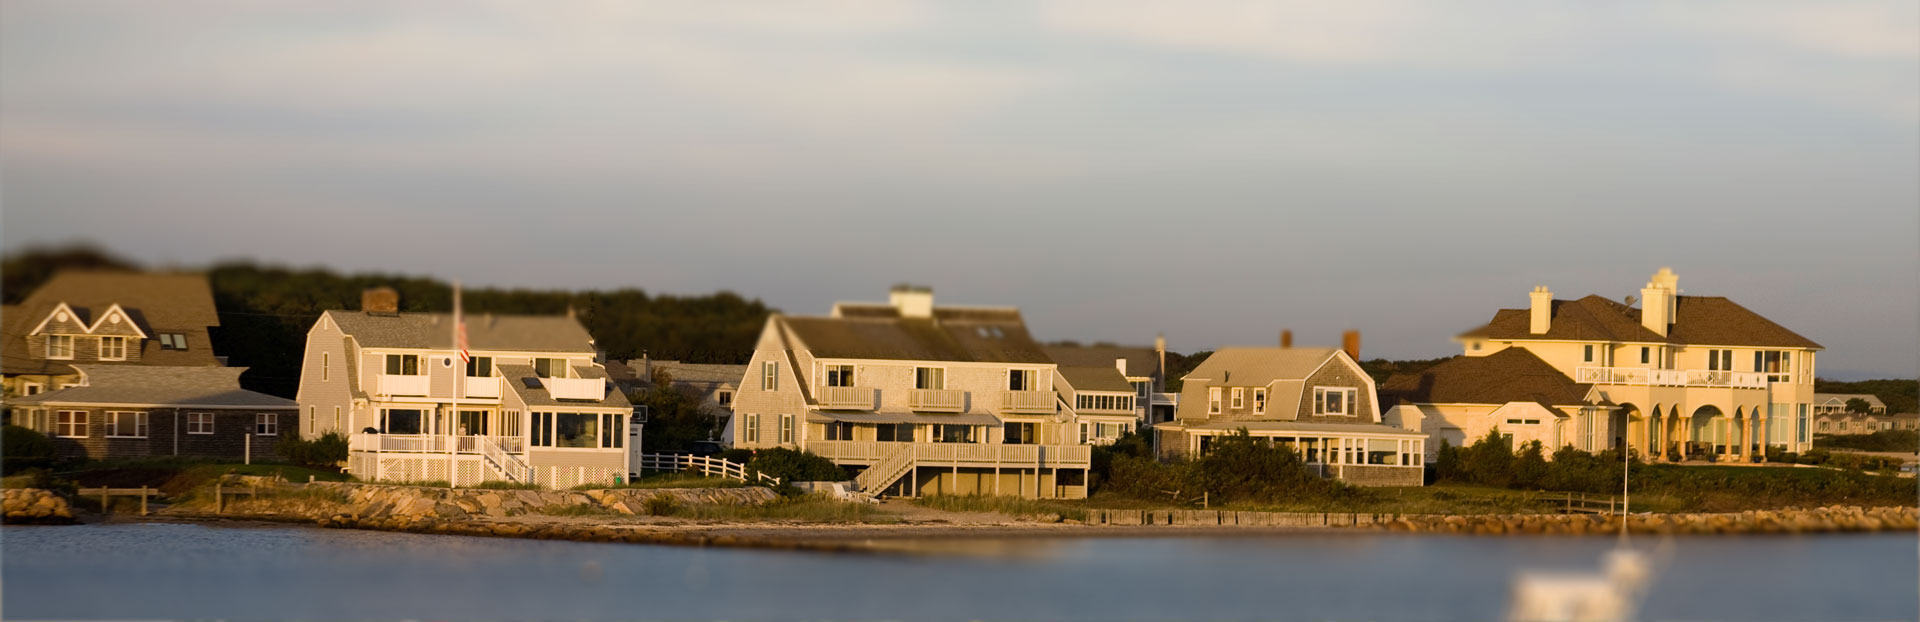 rentals estate hyannis cape cottage real barnstable yarmouth mls road o cod craigville